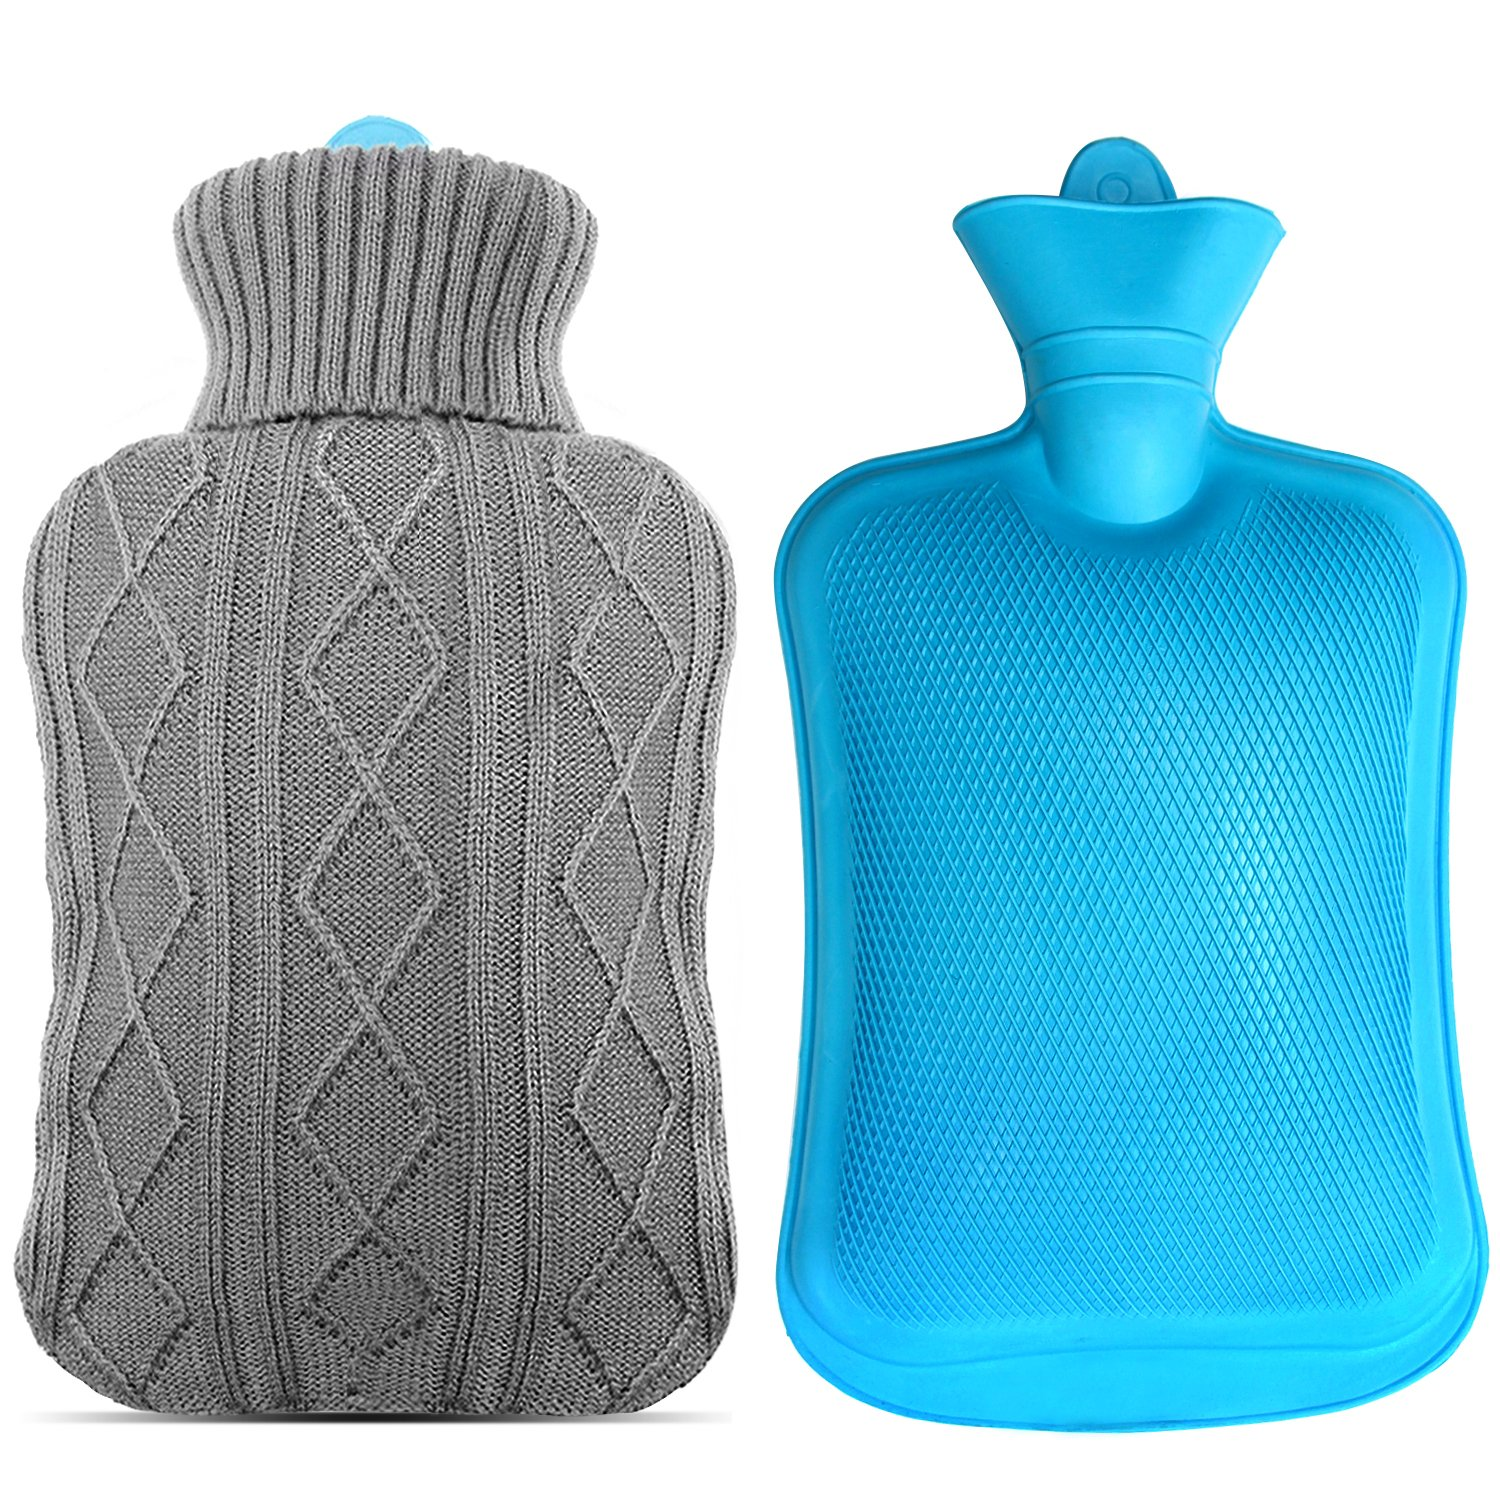 Mture Hot Water Bottle With Natural Rubber and Soft Knitted Removable Cover, 2 Litre, Grey 929HWBBU